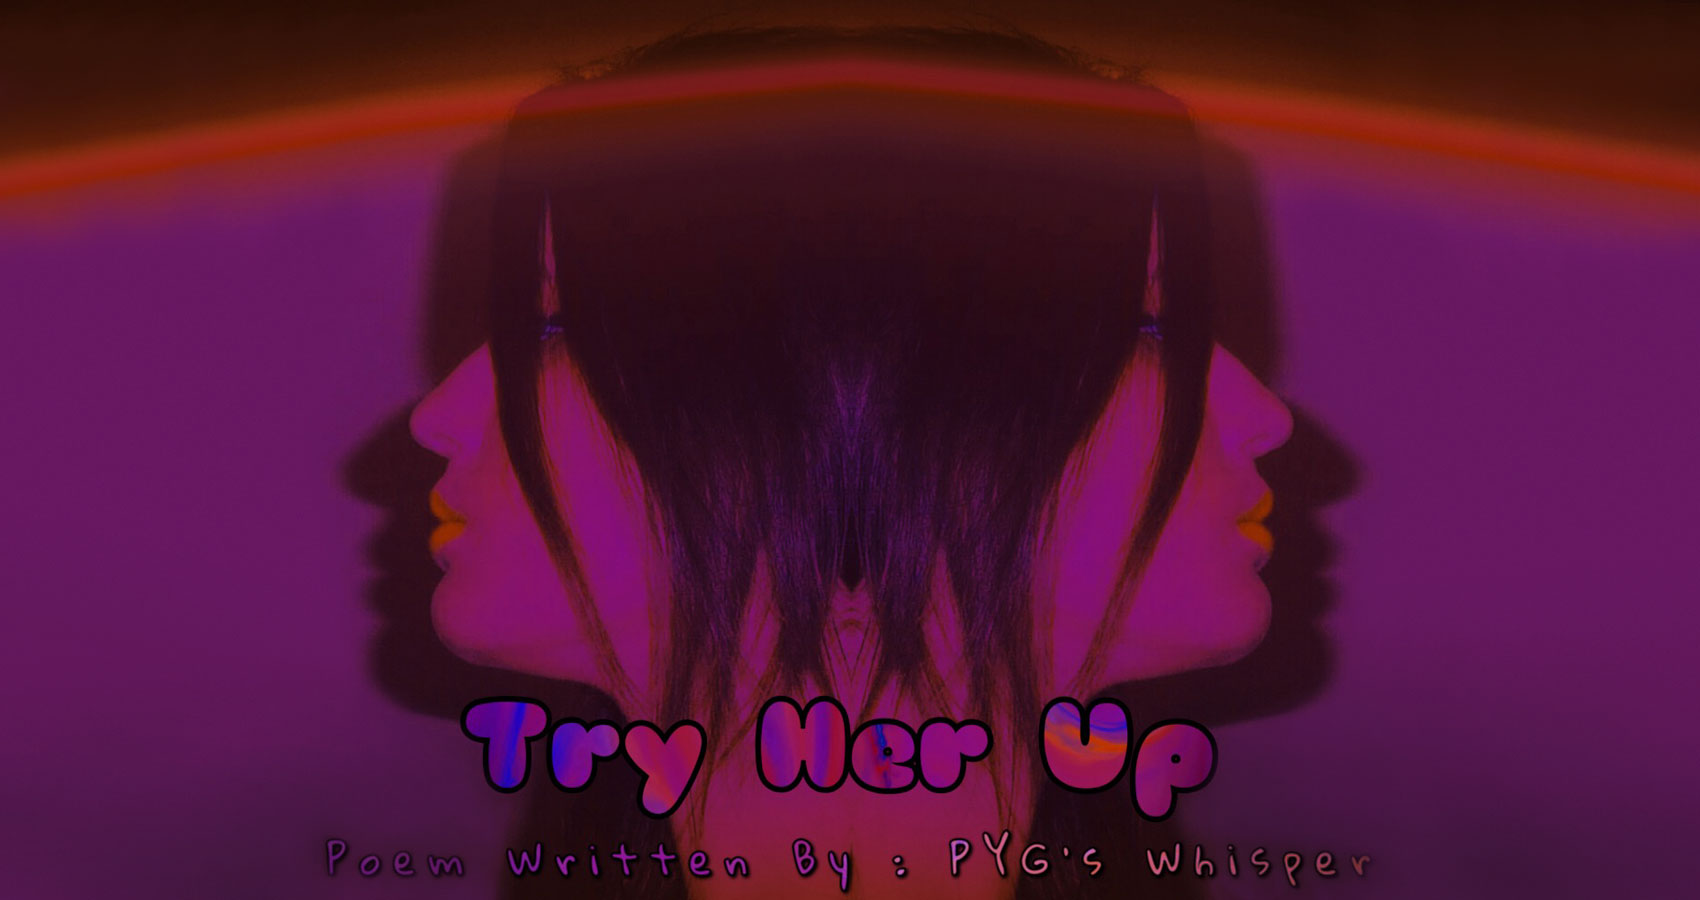 Try Her Up, written by PYG's Whisper at Spillwords.com